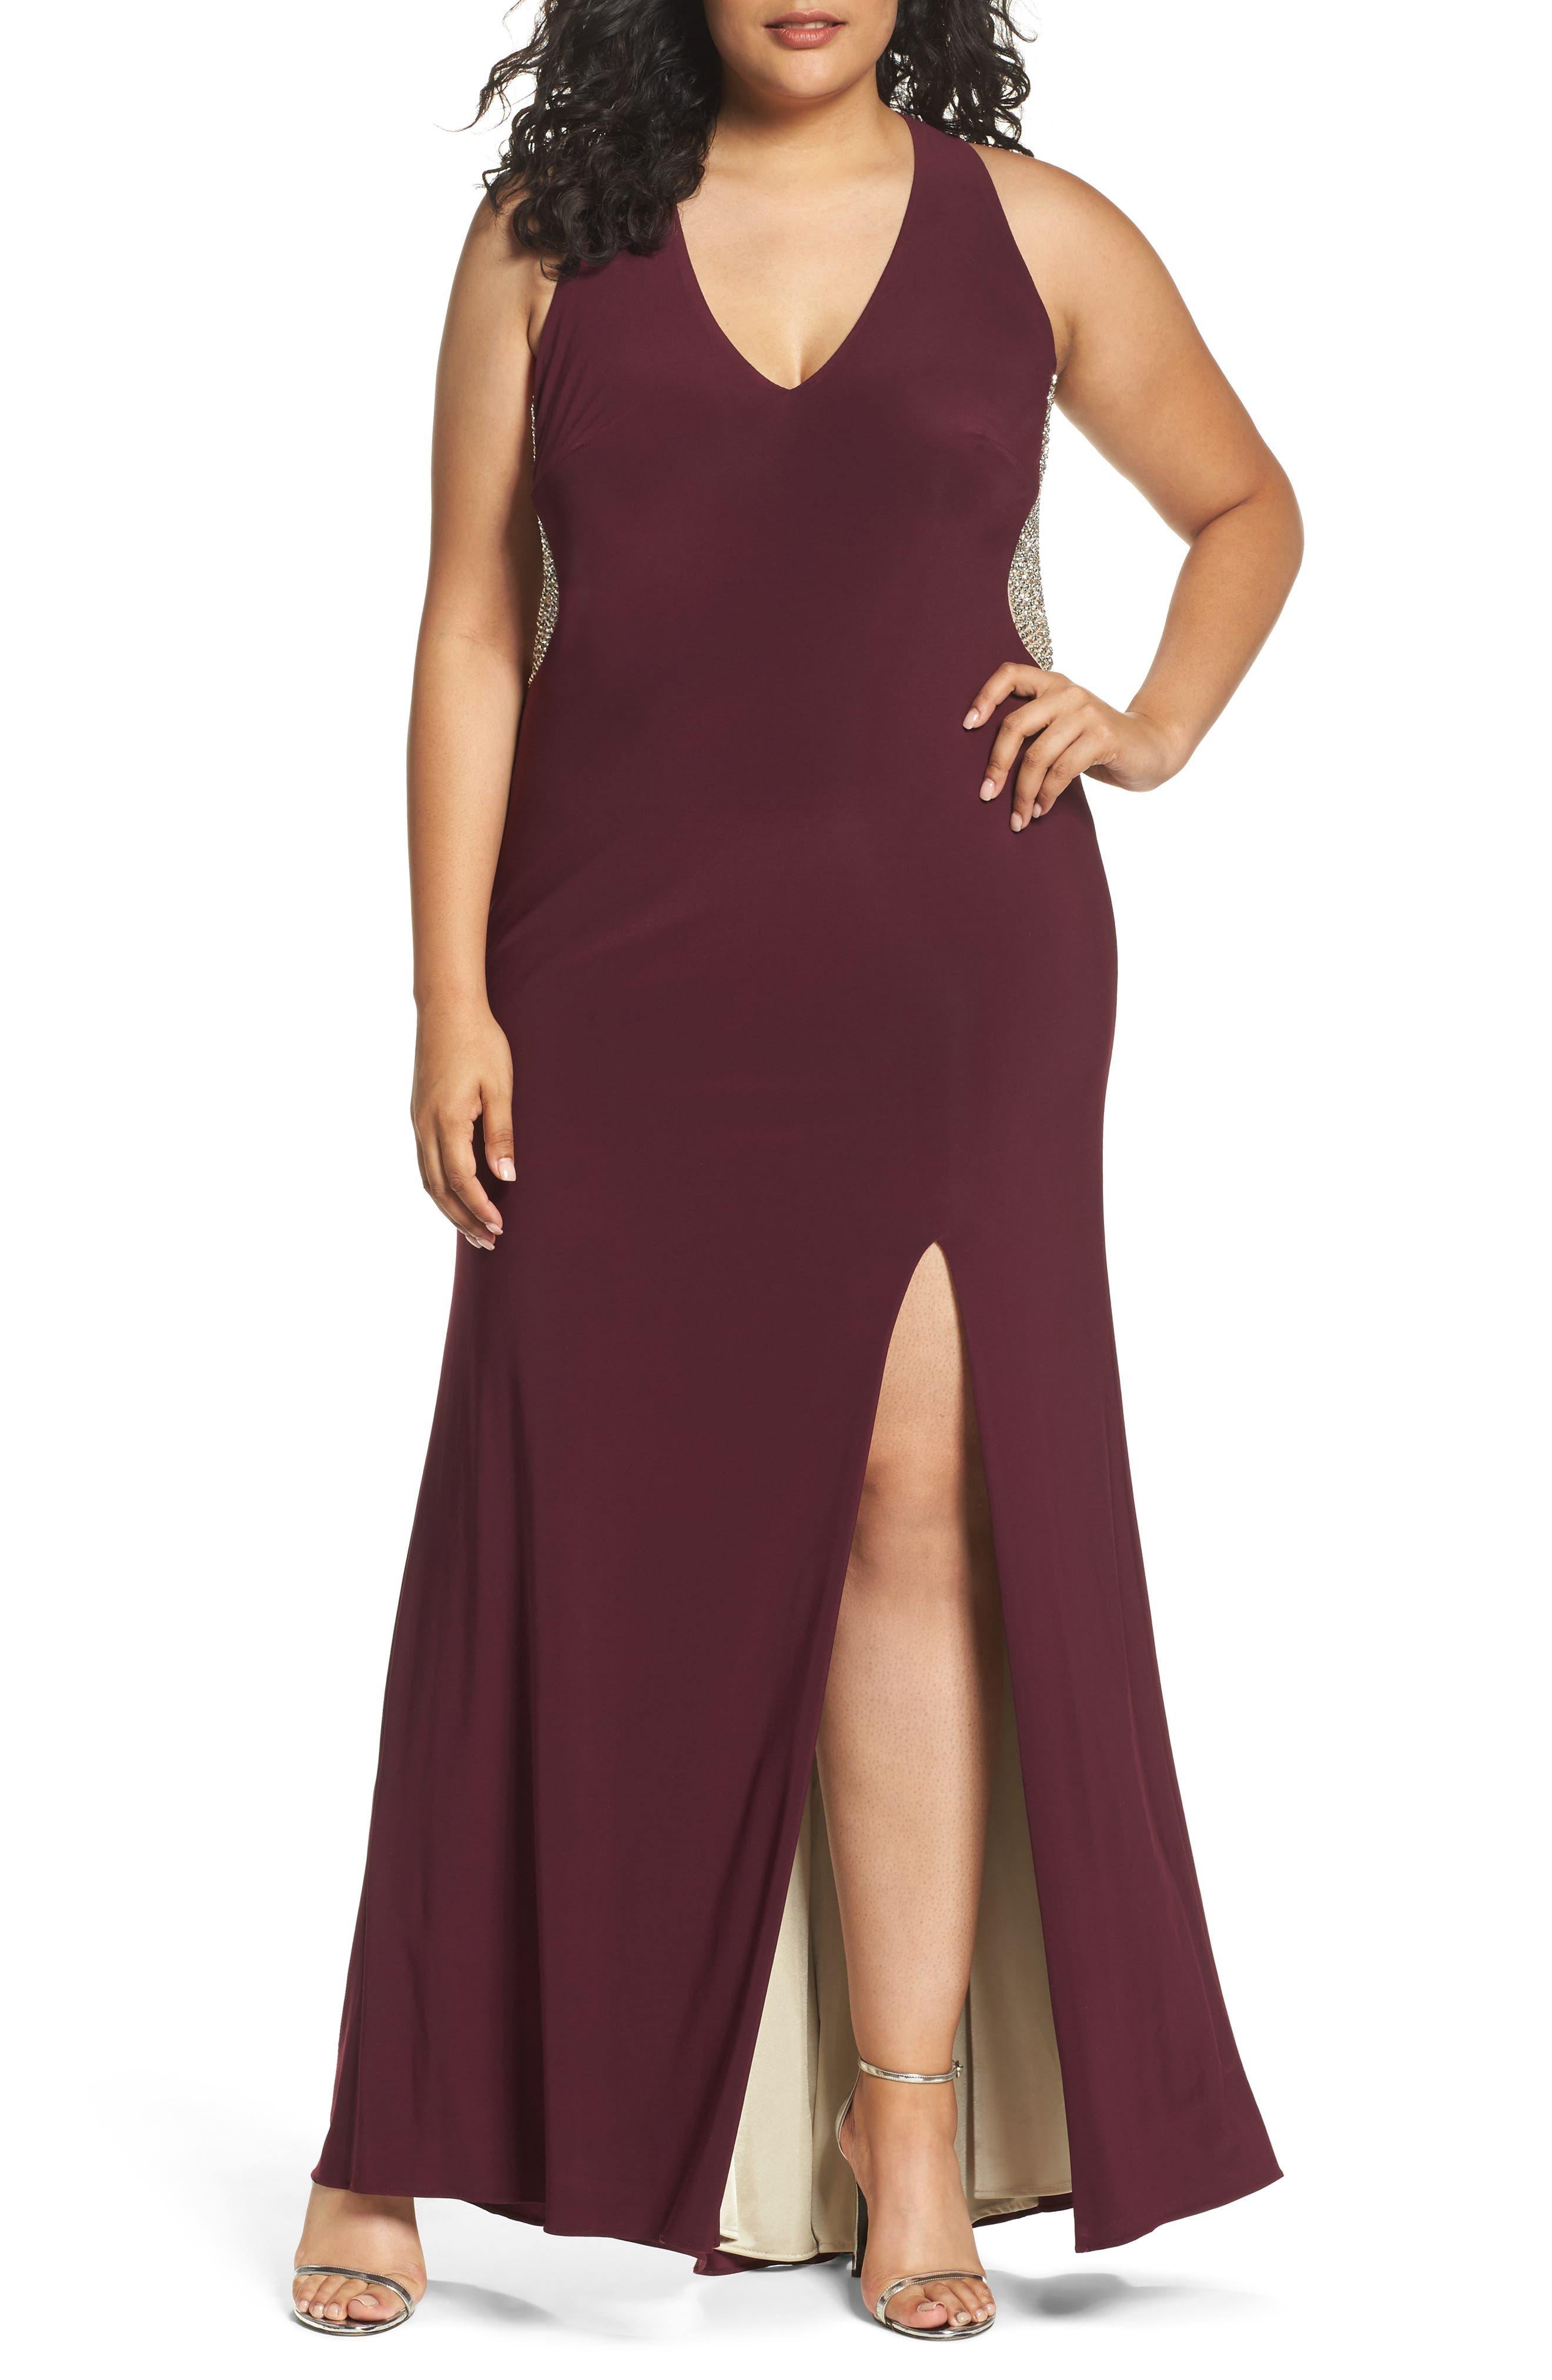 Alternate Image 1 Selected - Xscape Embellished Back Jersey Gown (Plus Size)